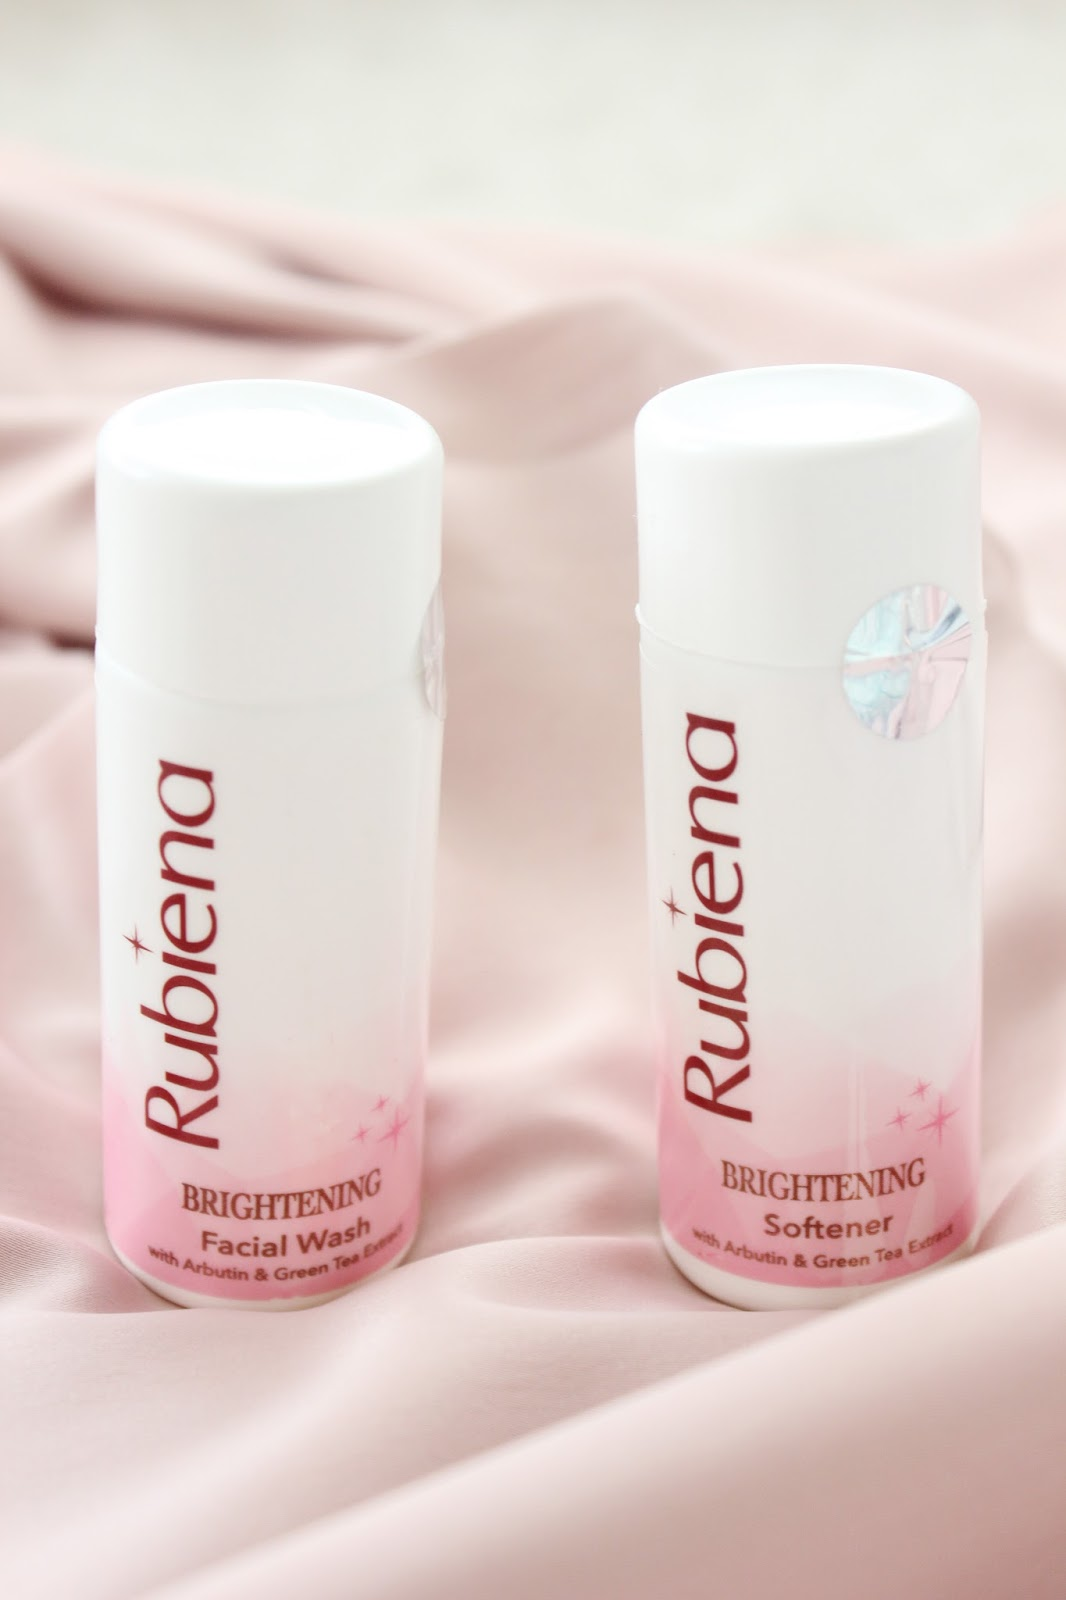 Rubiena Beauty Brightening Skincare